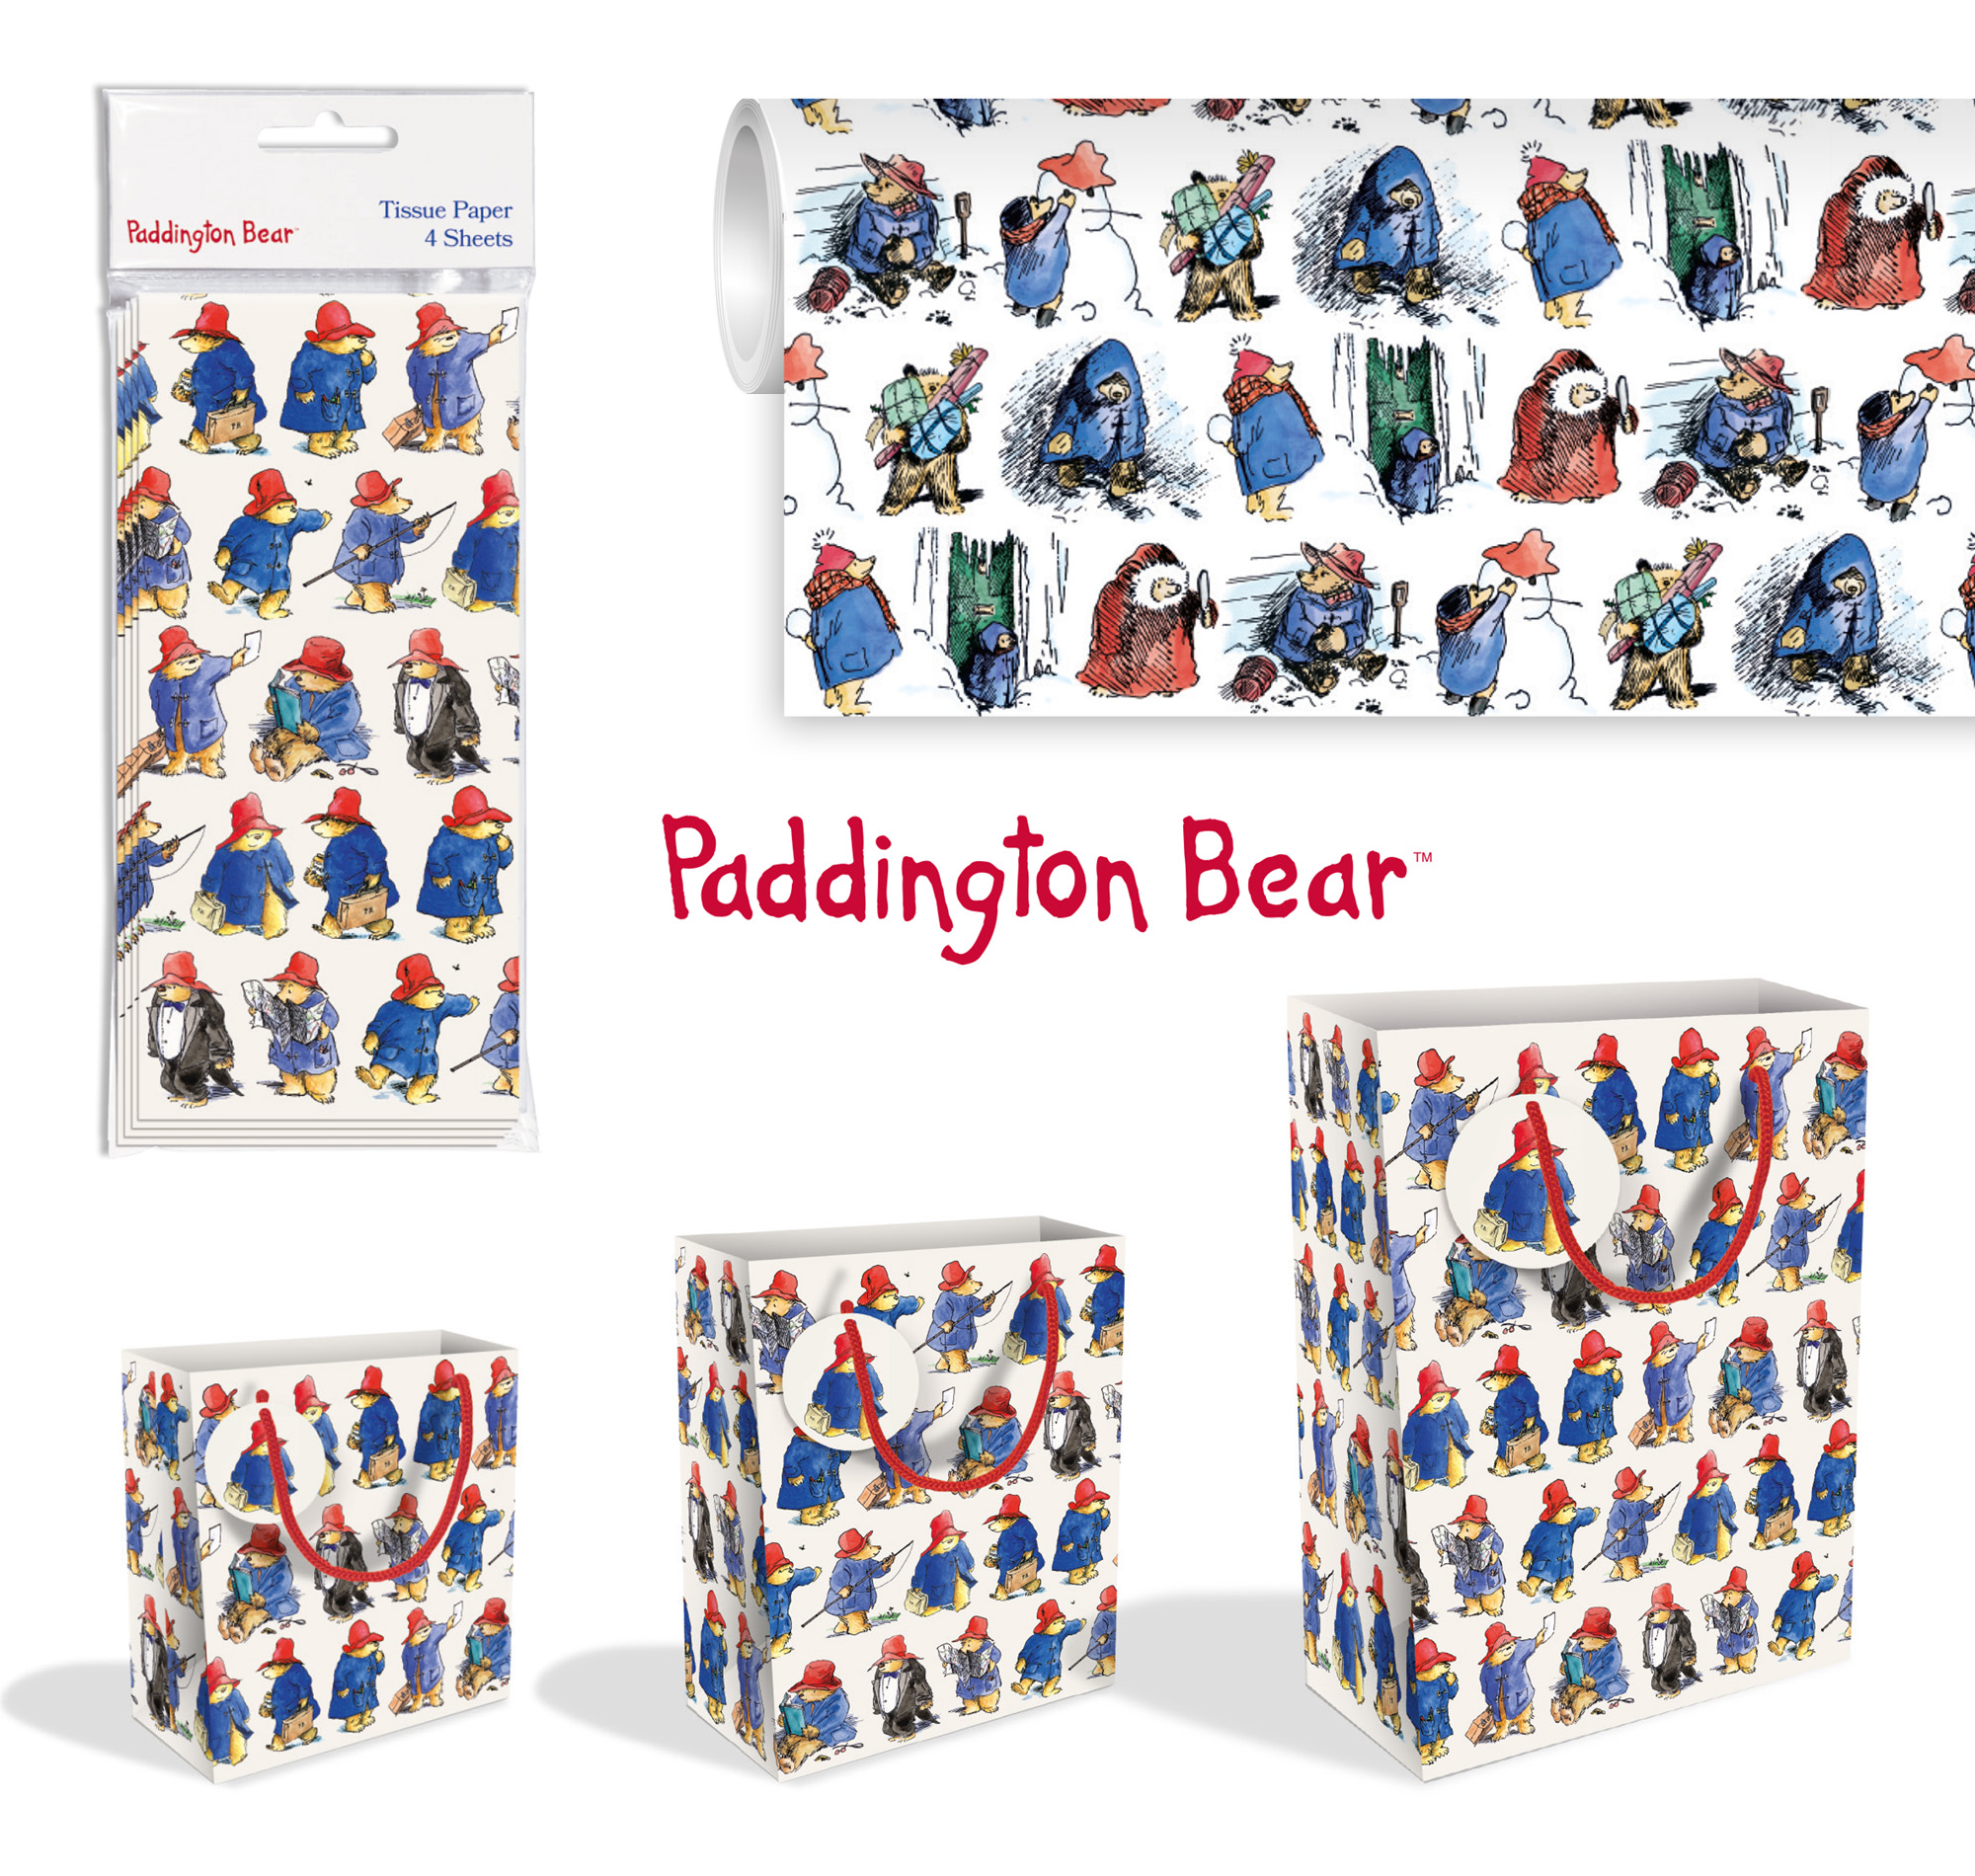 93fbef1813 Additional Paddington Bear Stationery available now